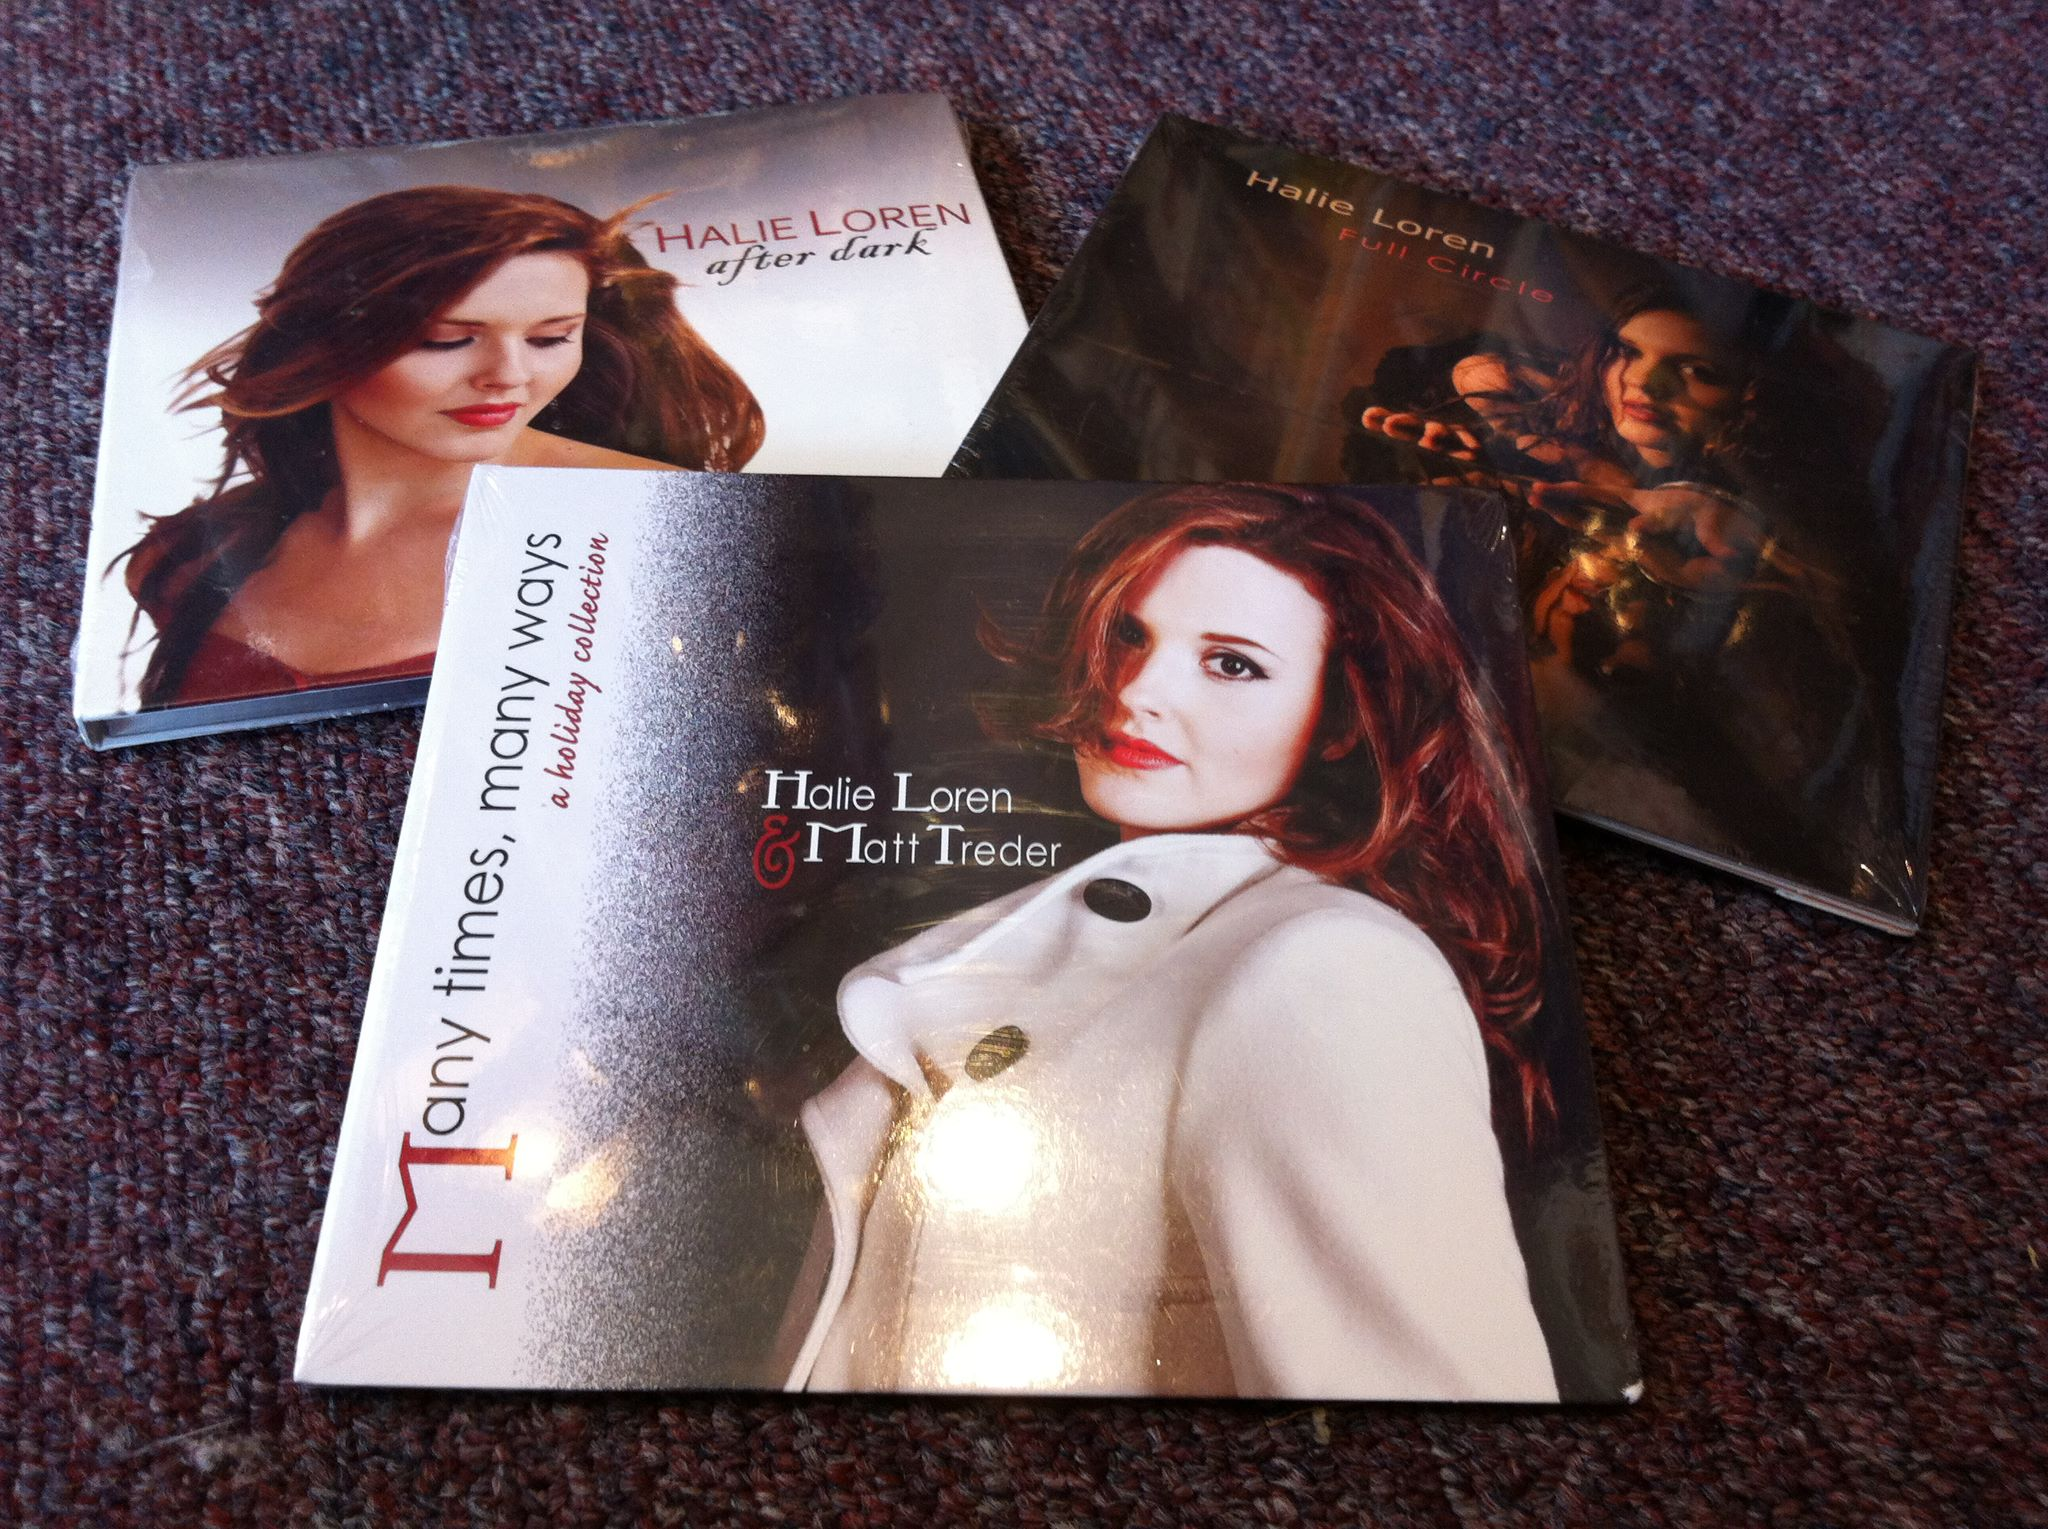 Halie Loren's CDs